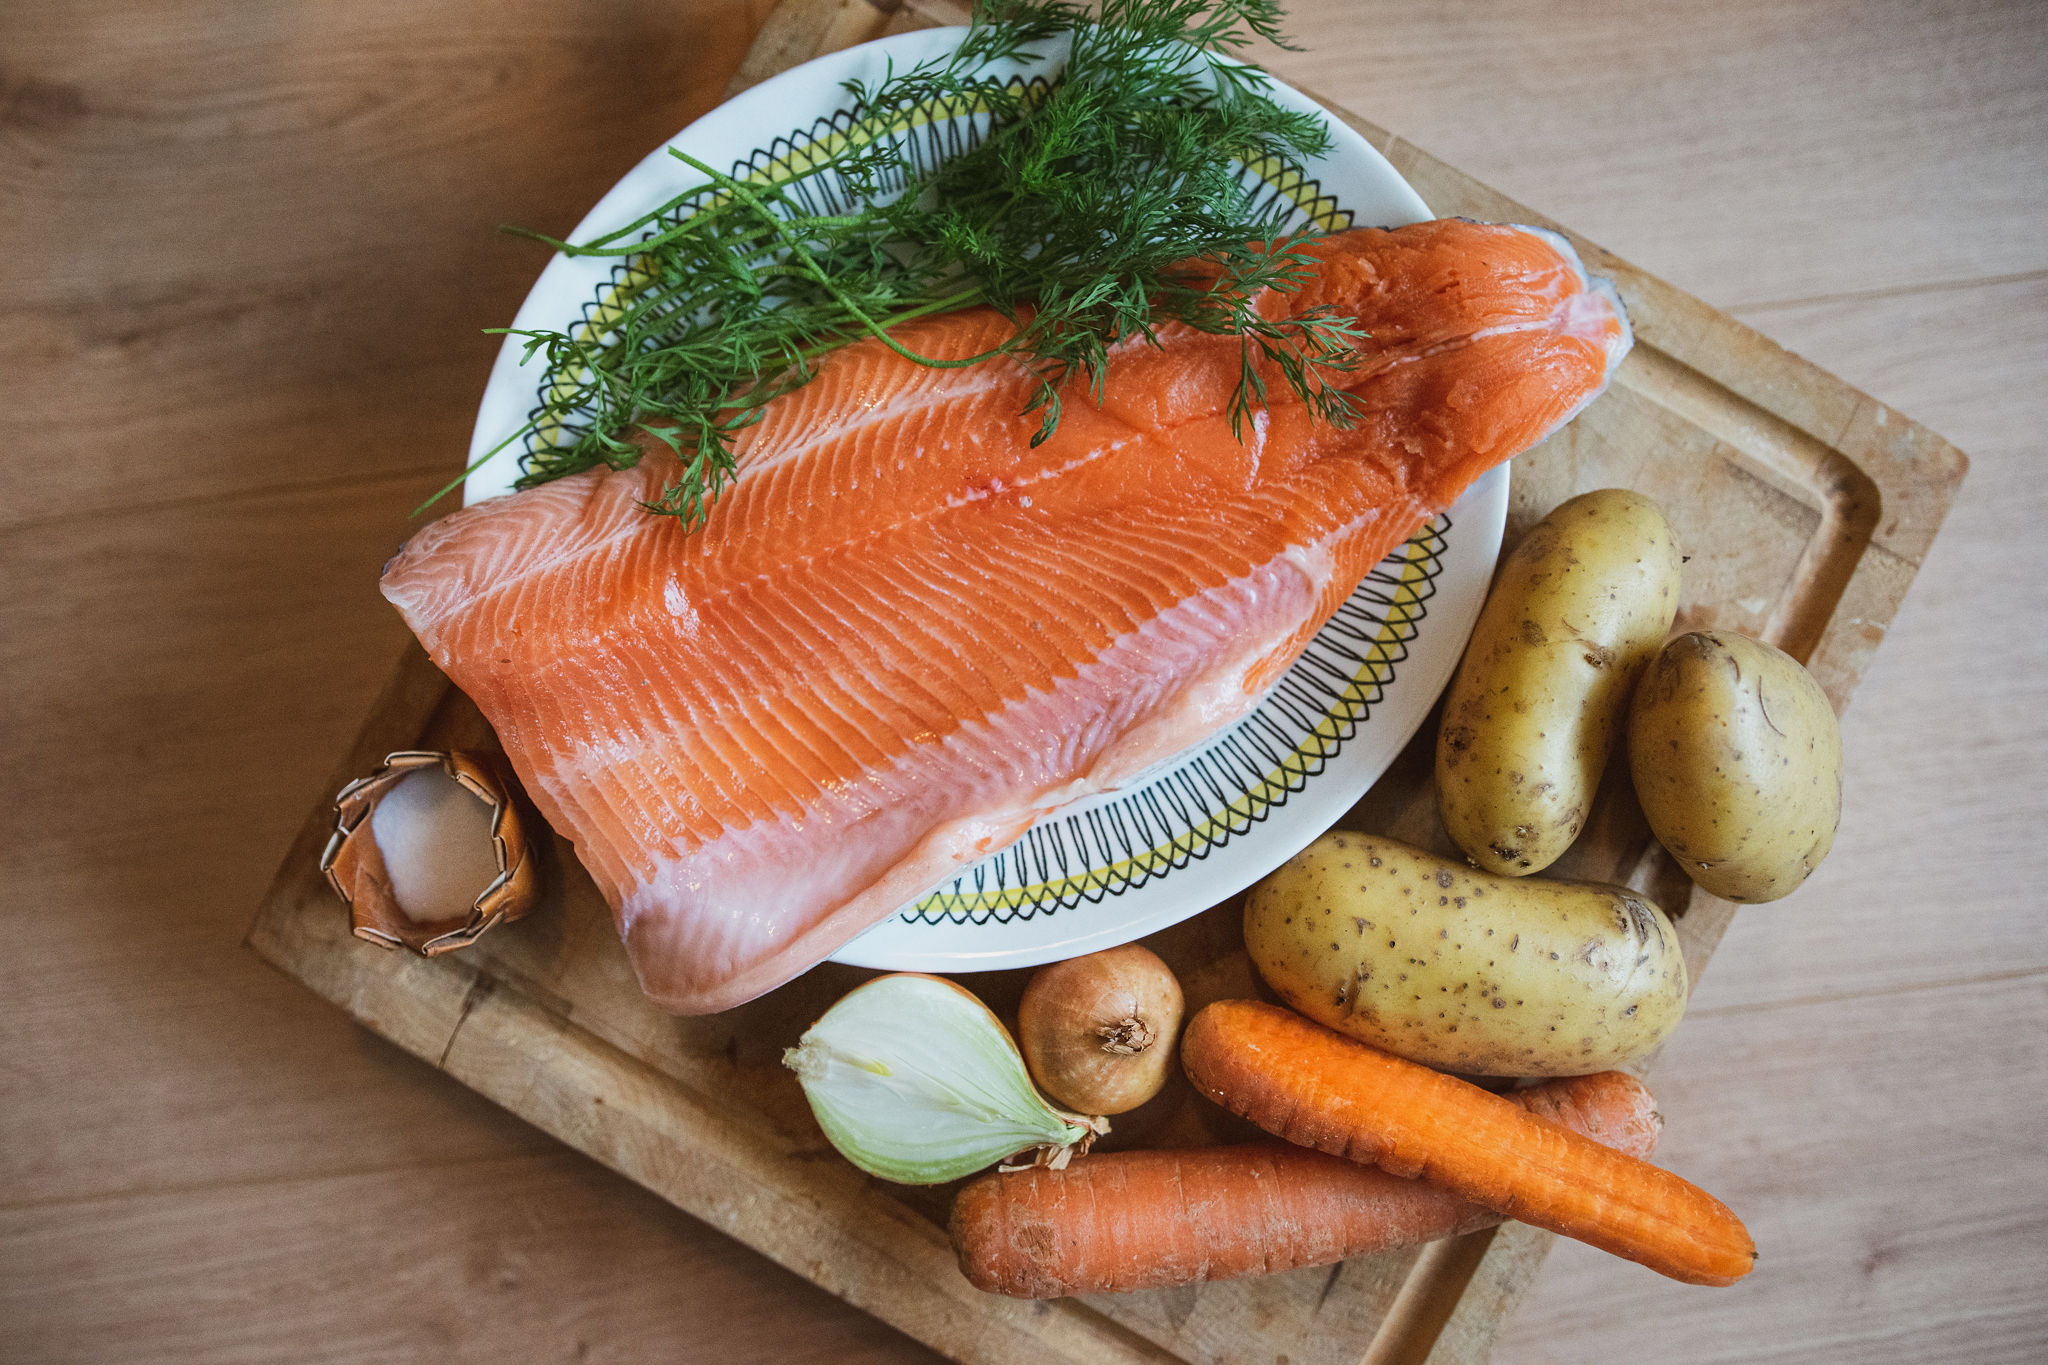 Ingredients of traditional salmon soup recipe